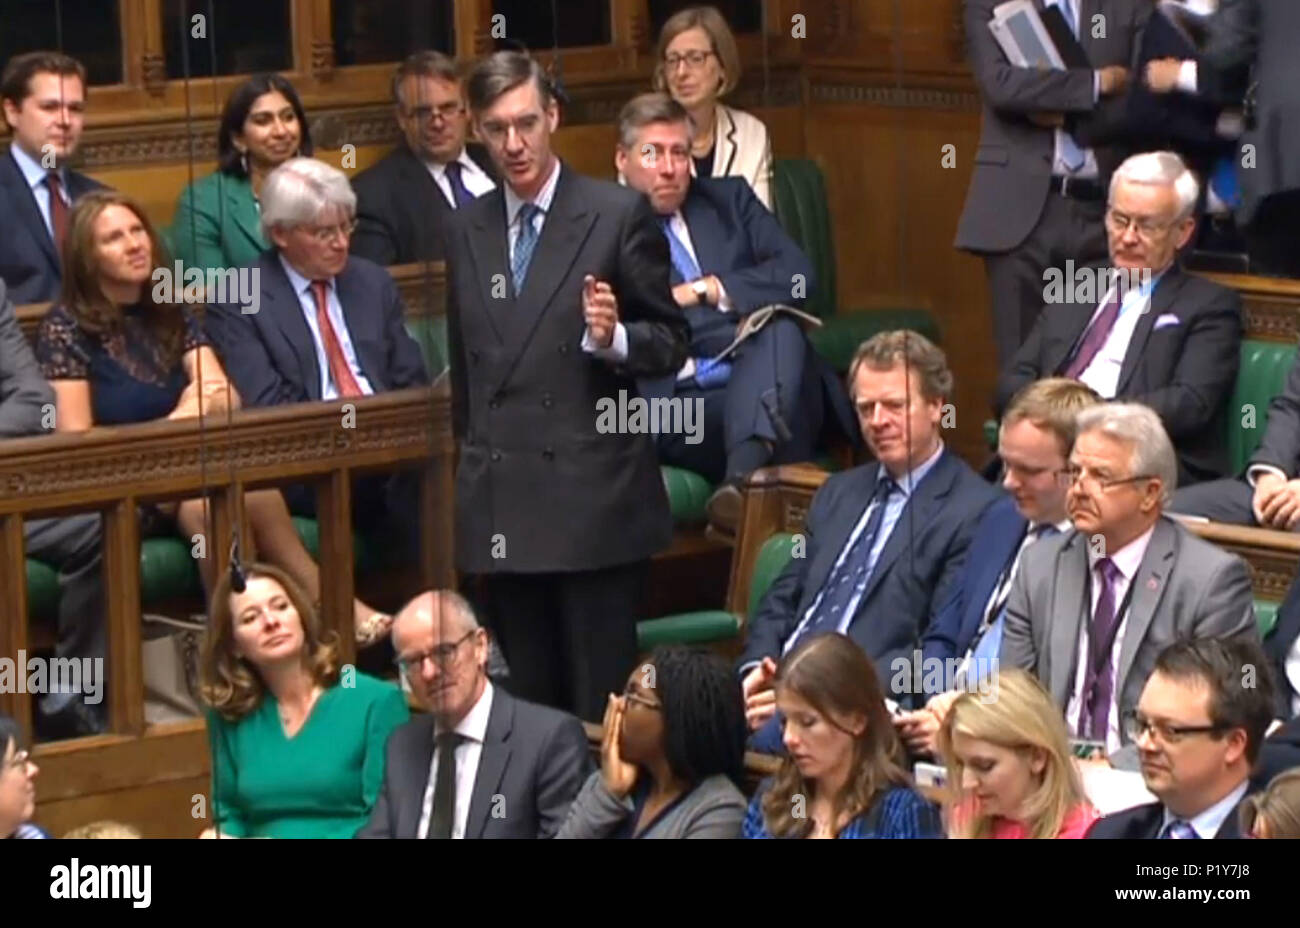 Conservative MP Jacob Rees-Mogg speaks during Prime